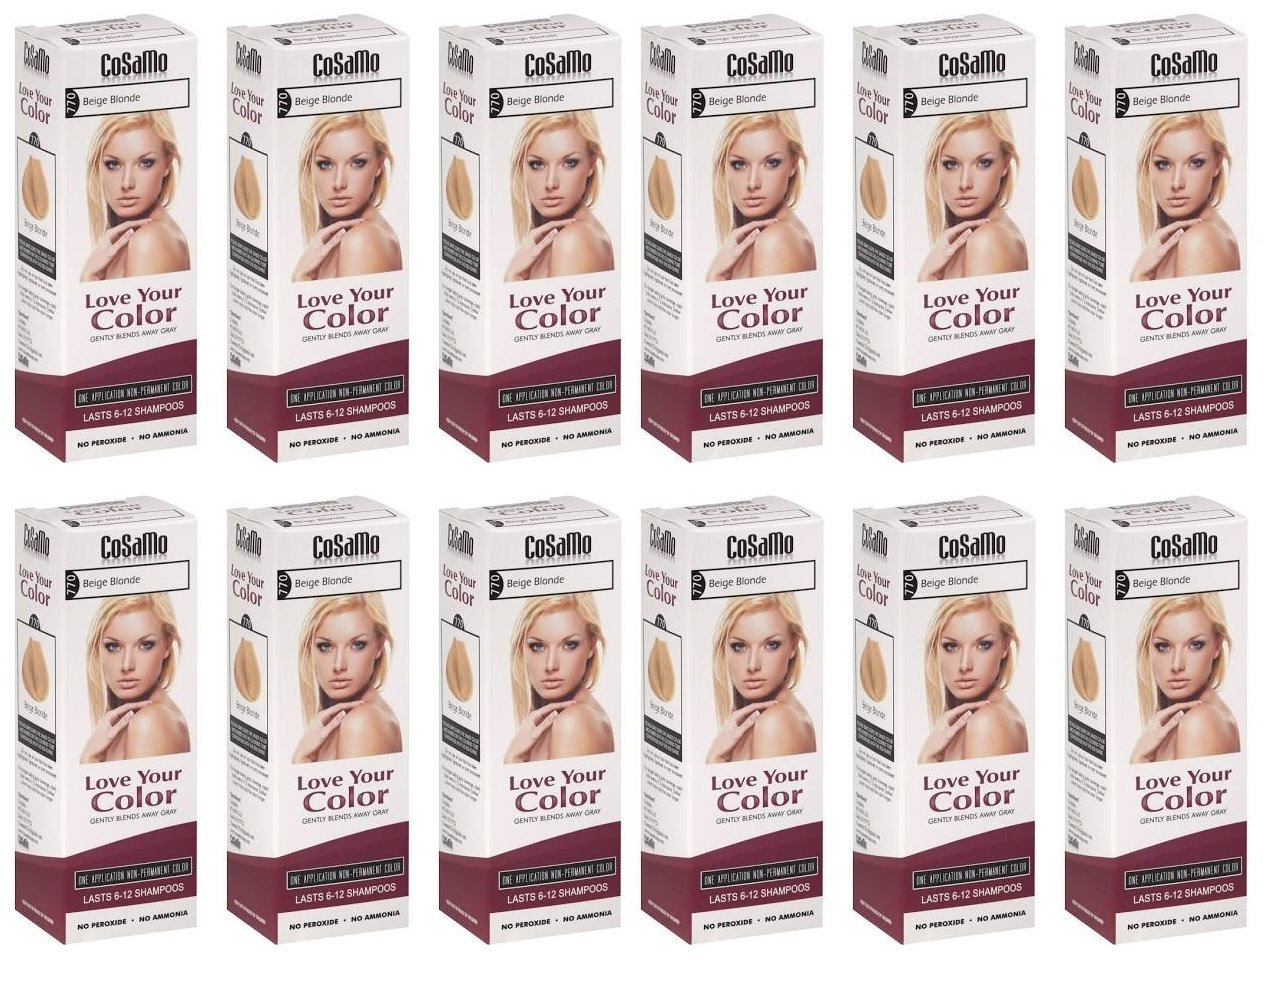 CoSaMo - Love Your Color Non-Permanent Hair Color 770 Beige Blonde - 3 oz. (Pack of 12) + FREE Travel Toothbrush, Color May Vary